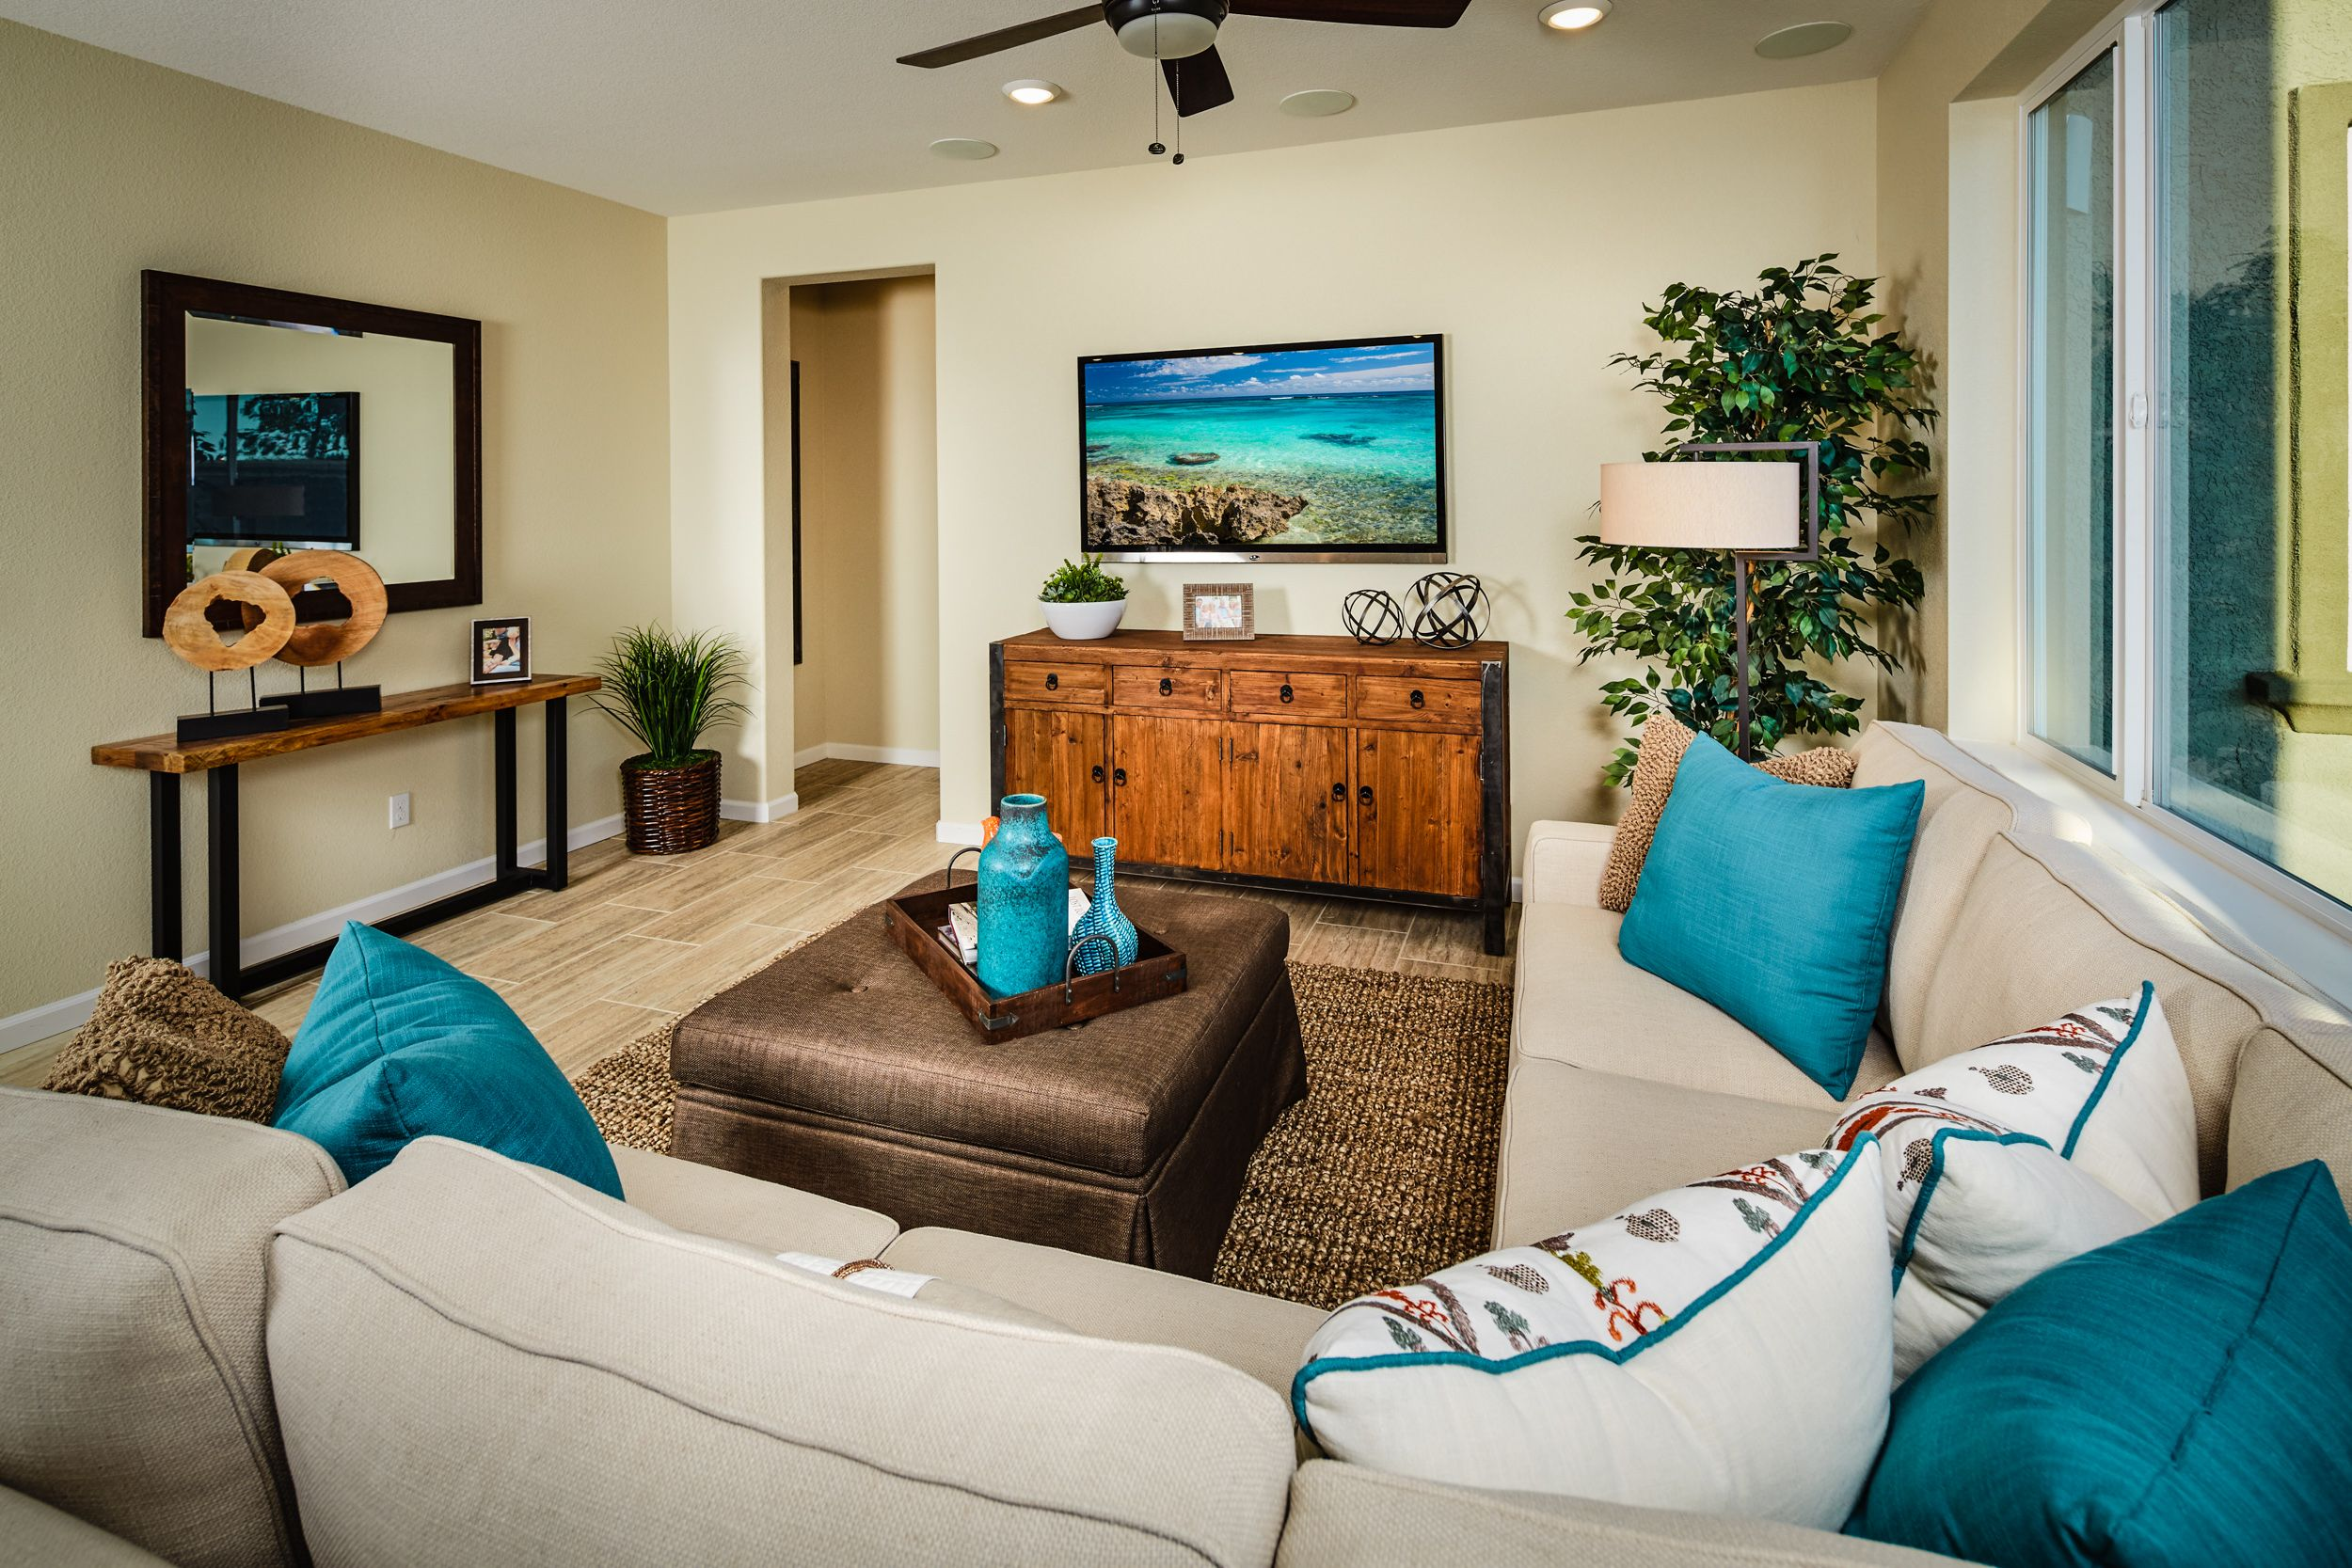 Come home to beautifulliving with taylormorrison